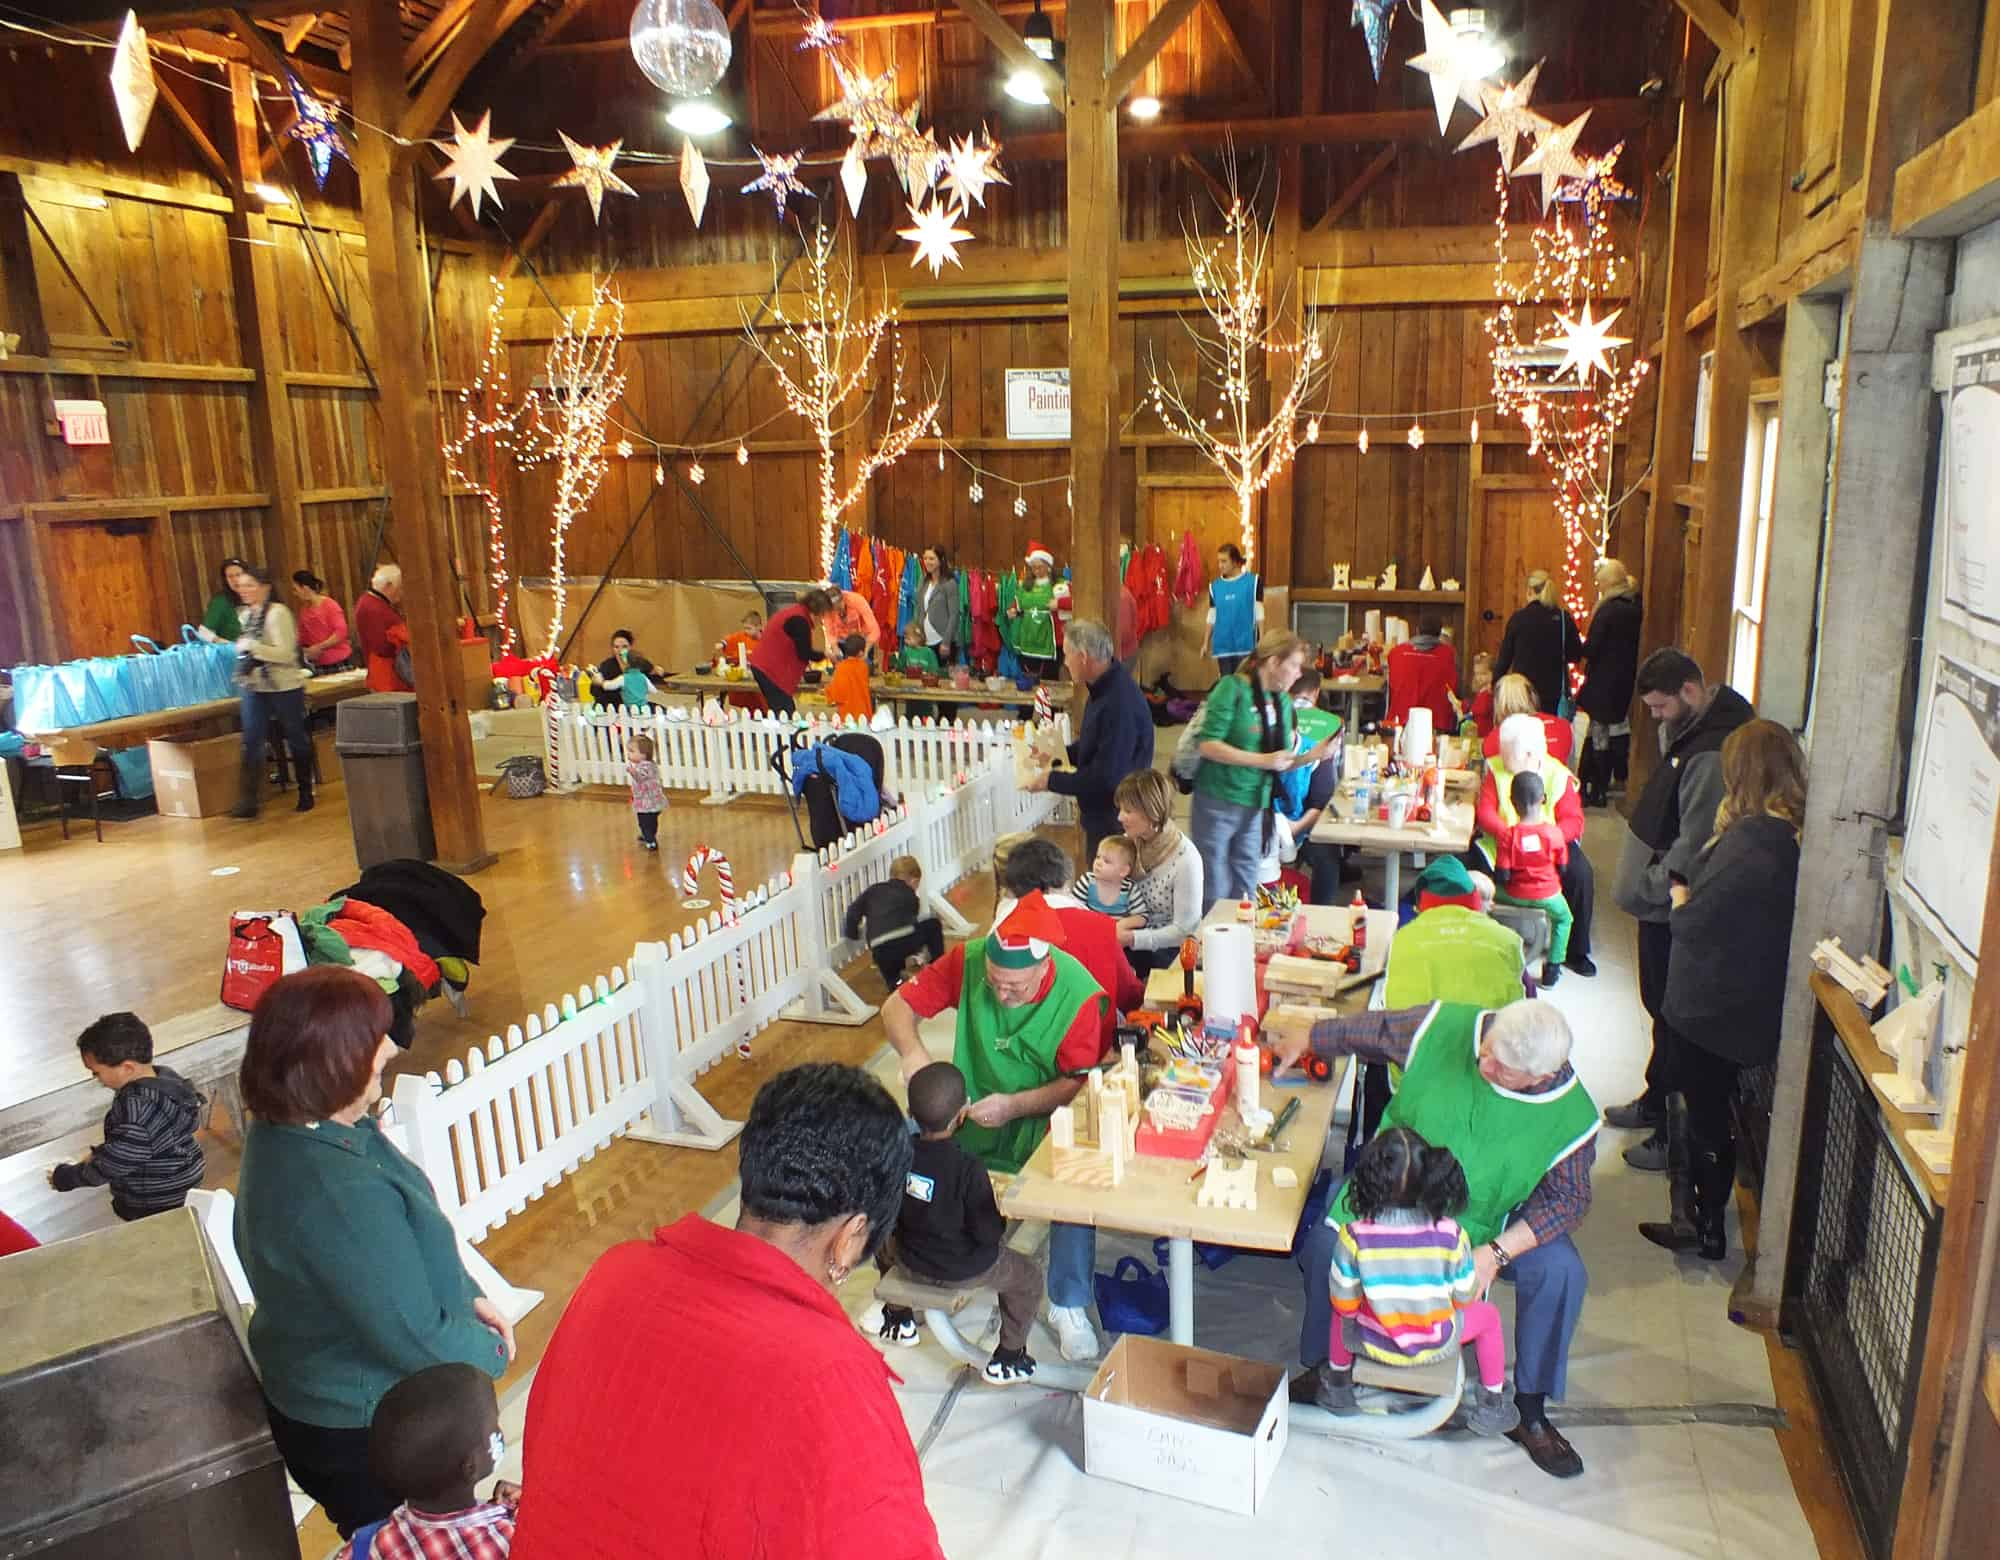 Snowflake Castle: Toys and Photos with Santa and the Elves